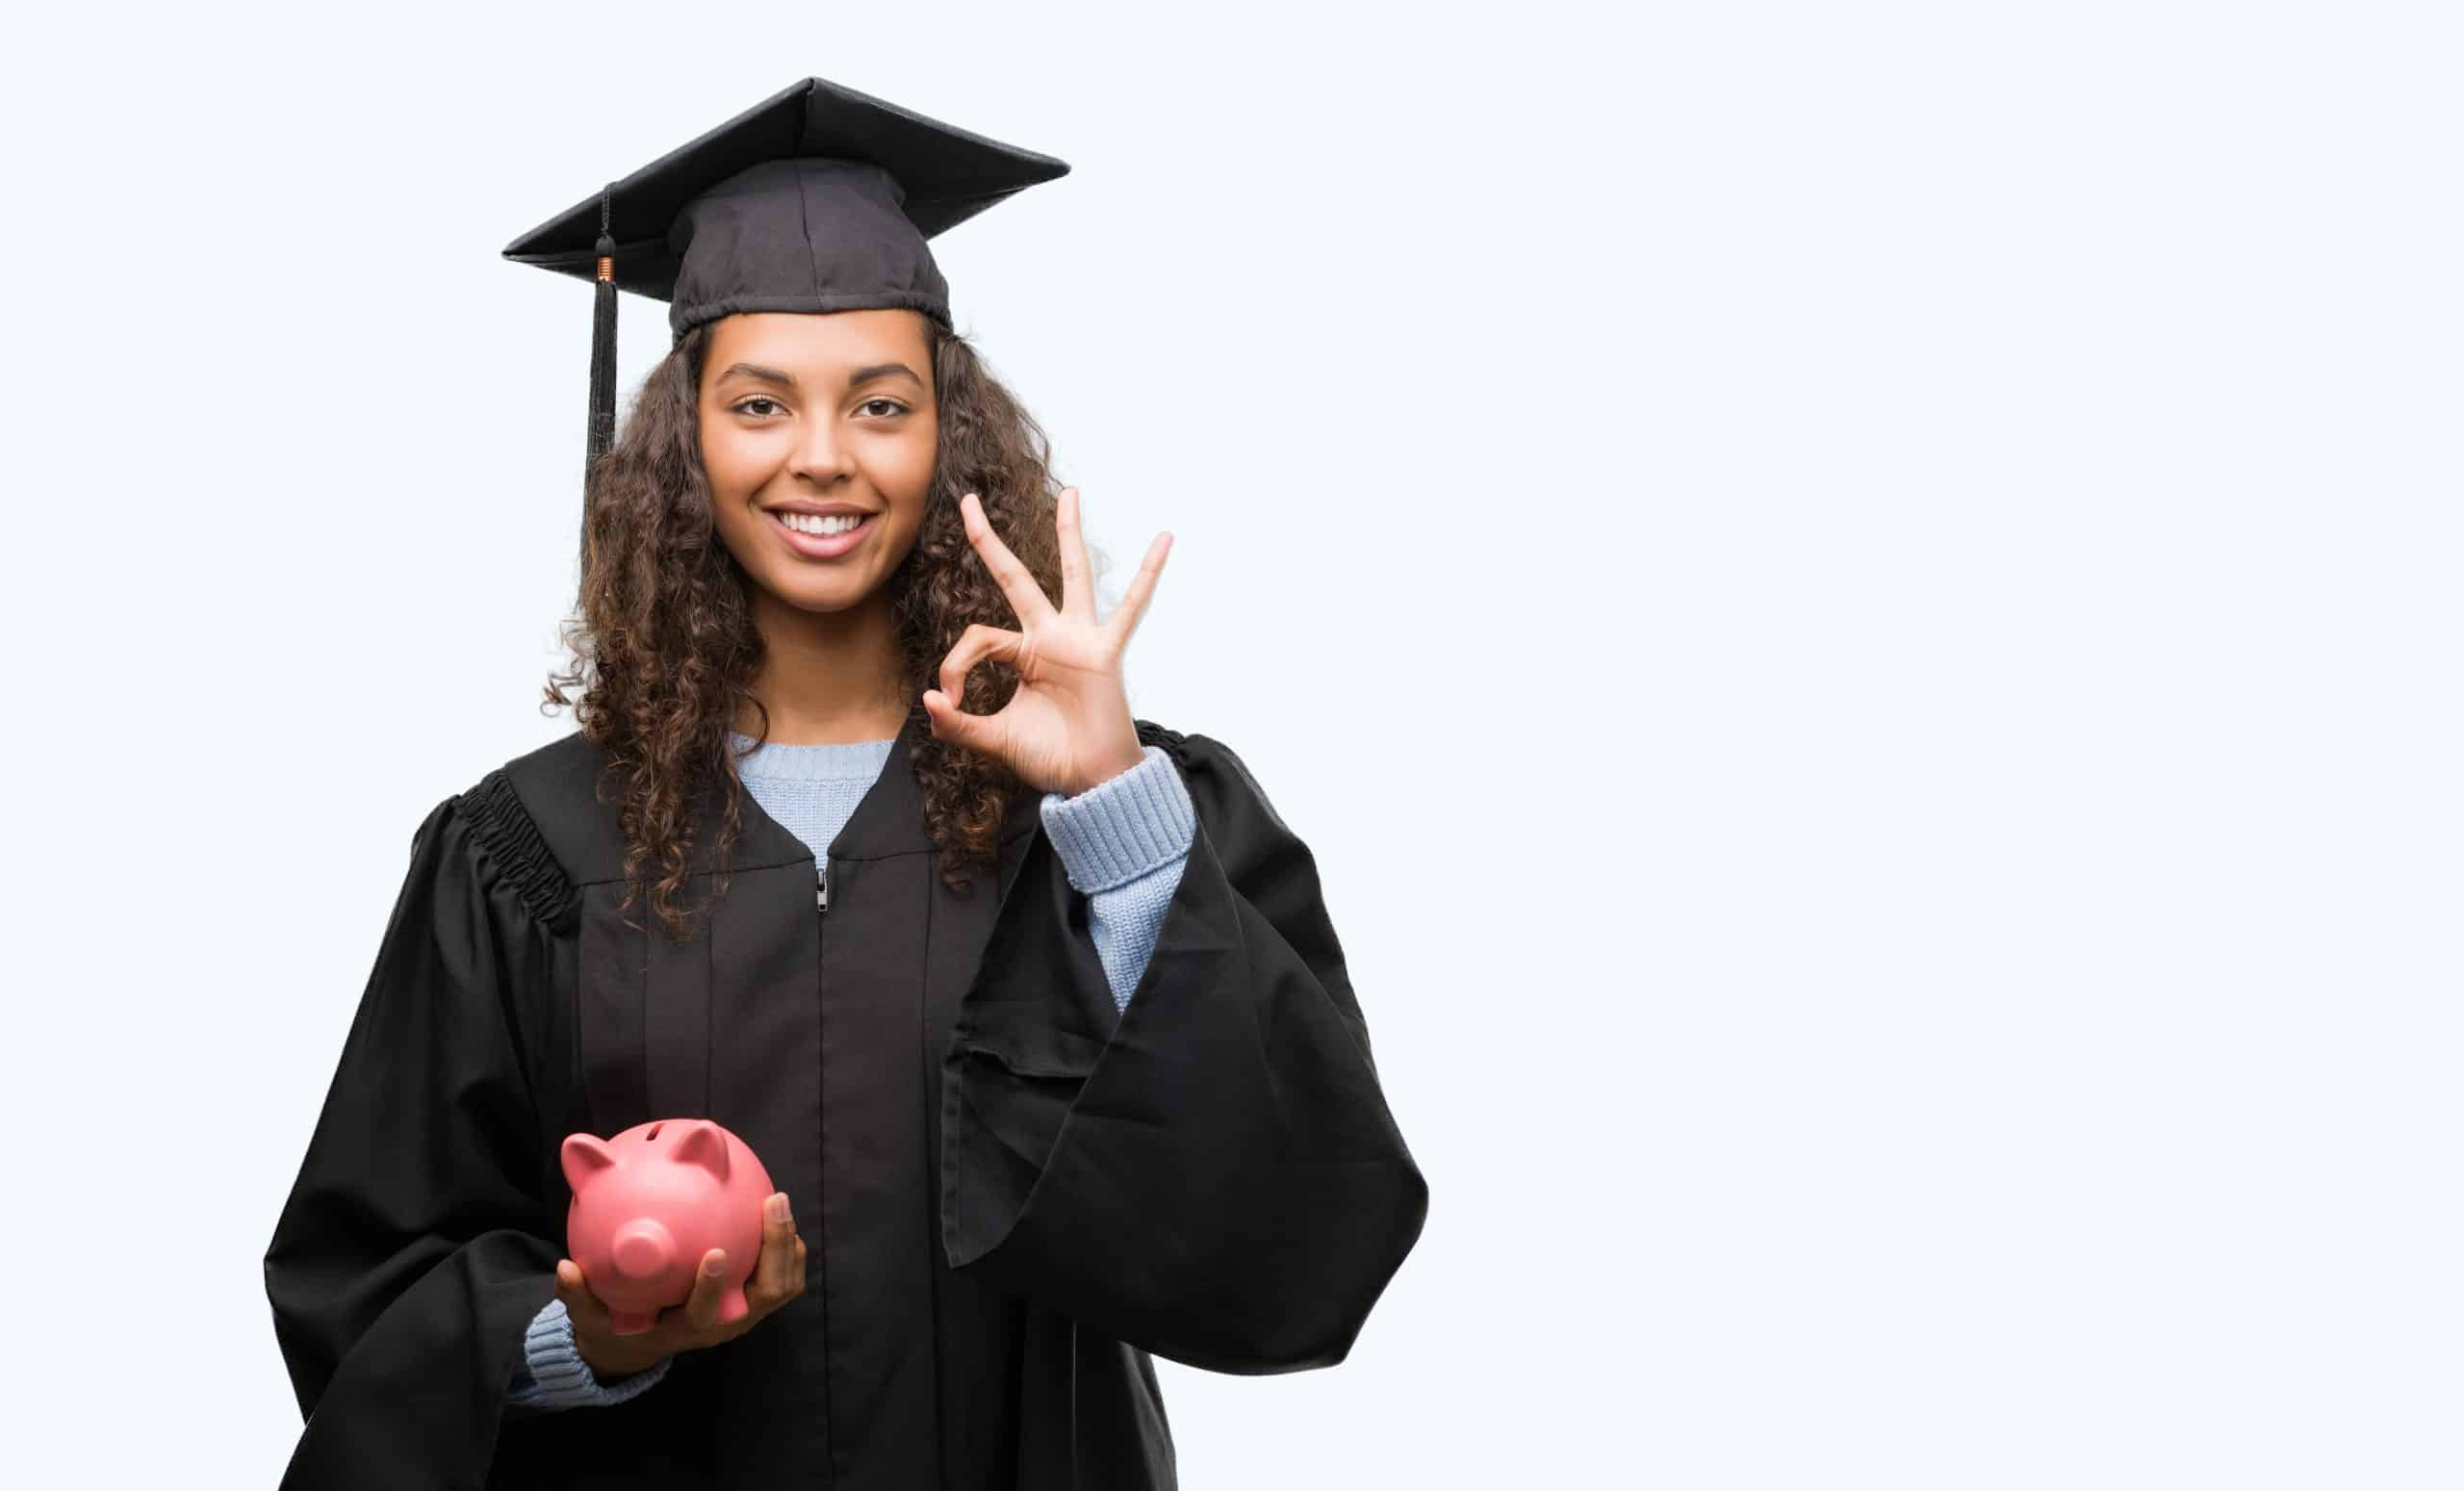 Money tips for graduates - Young hispanic woman wearing graduation uniform holding piggy bank doing ok sign with fingers, excellent symbol